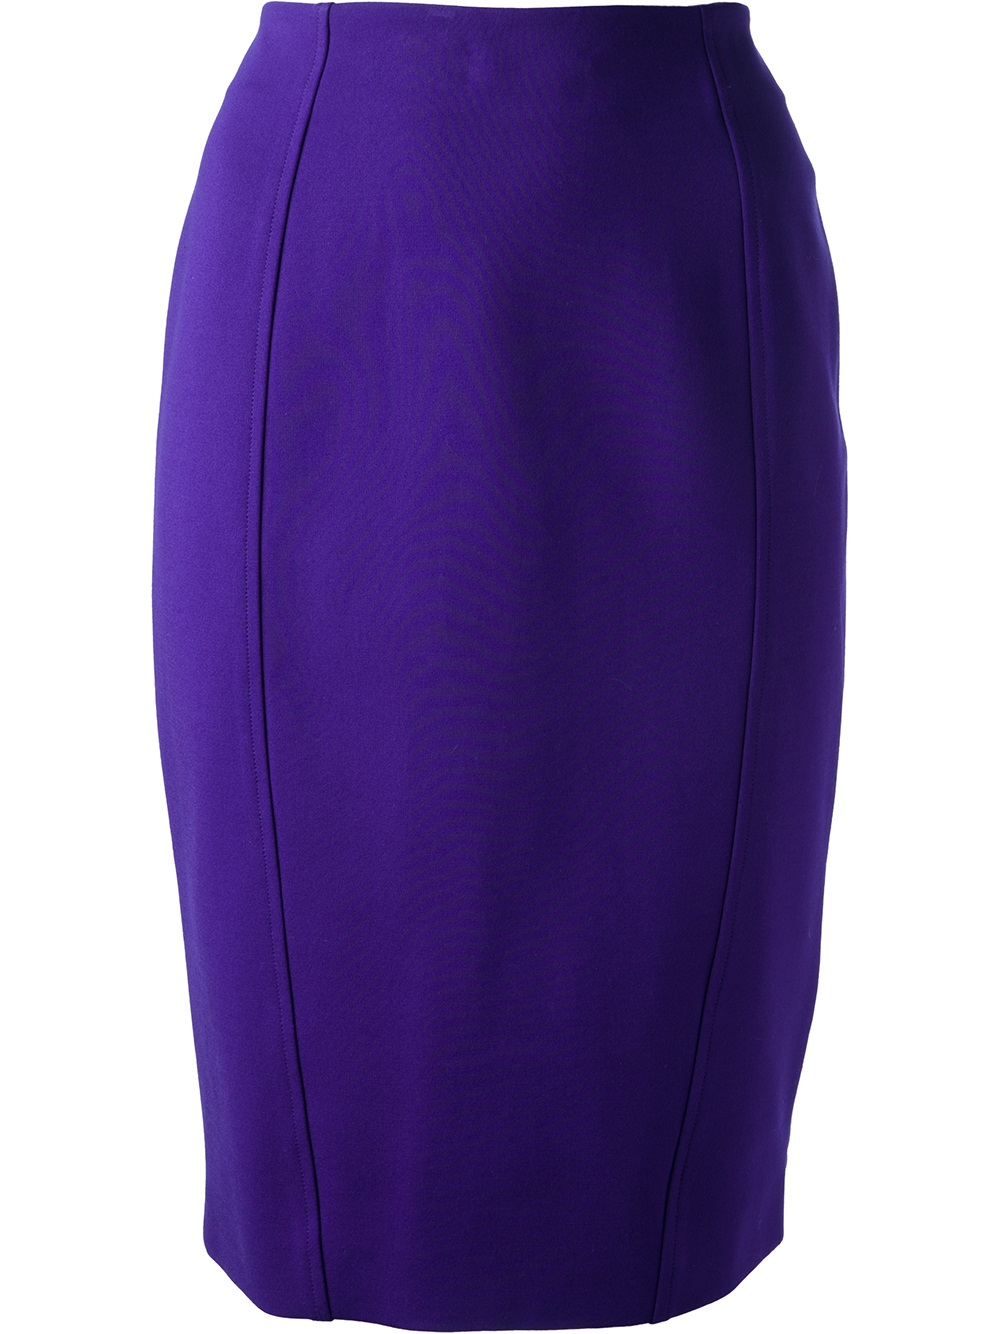 Moschino cheap chic zip pencil skirt in purple pink Inexpensive chic